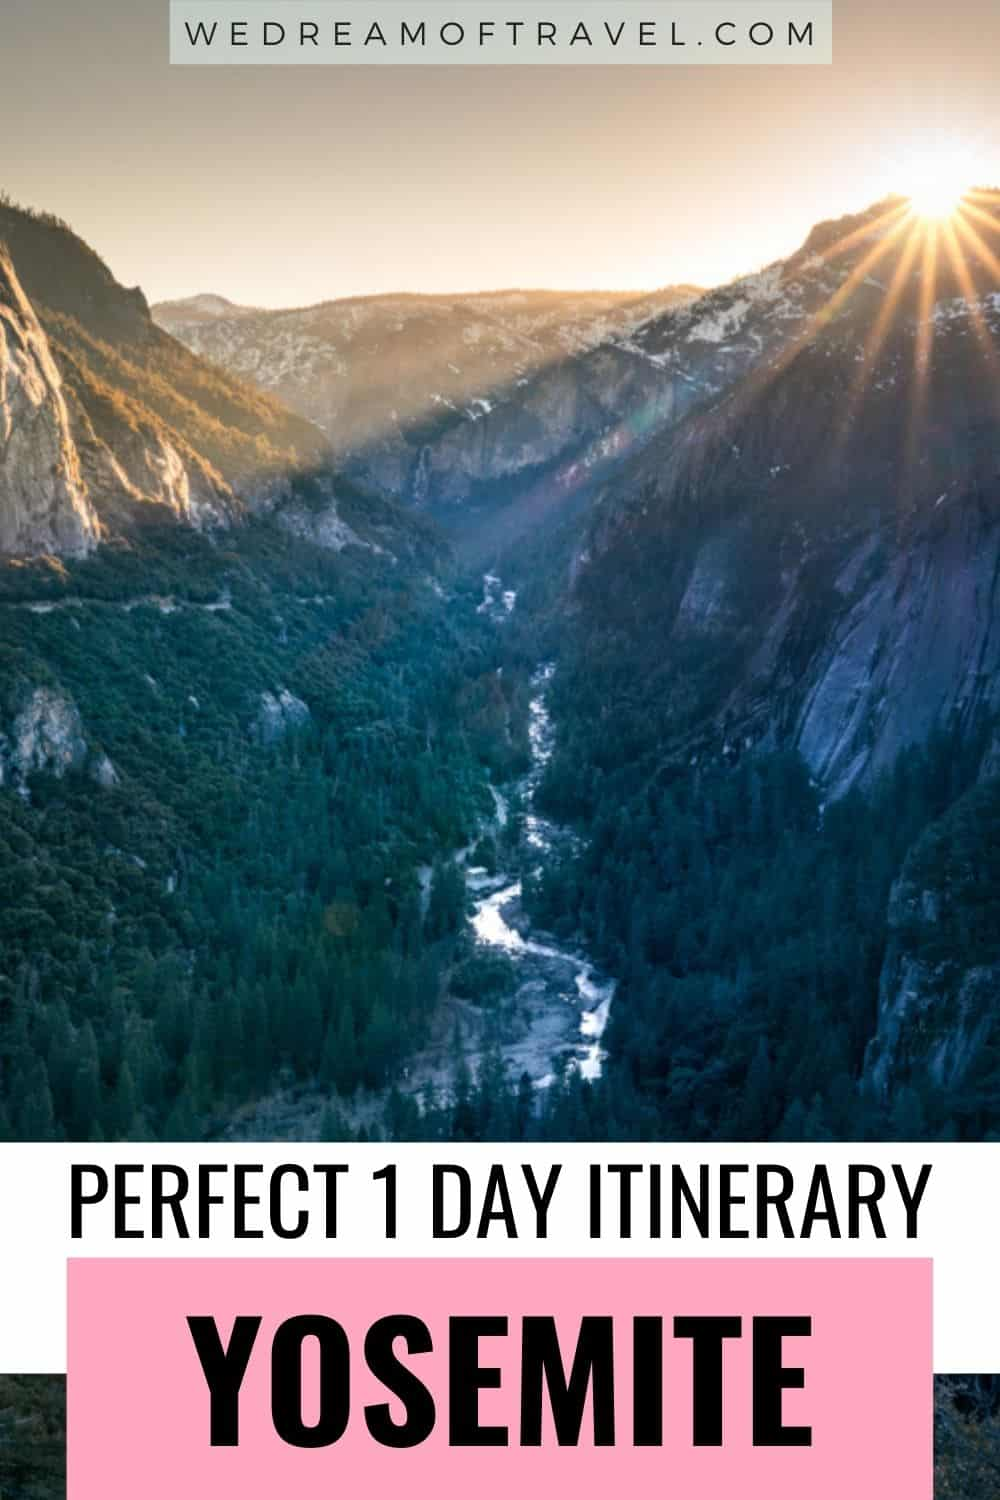 This 1 Day Yosemite Itinerary includes everything you need to know for a perfect day trip to Yosemite National Park. Find all the best stops, viewpoints and hikes to make the most of your one day in Yosemite. Yosemite Itinerary   1 day in Yosemite   Yosemite One Day Itinerary   Yosemite National Park California